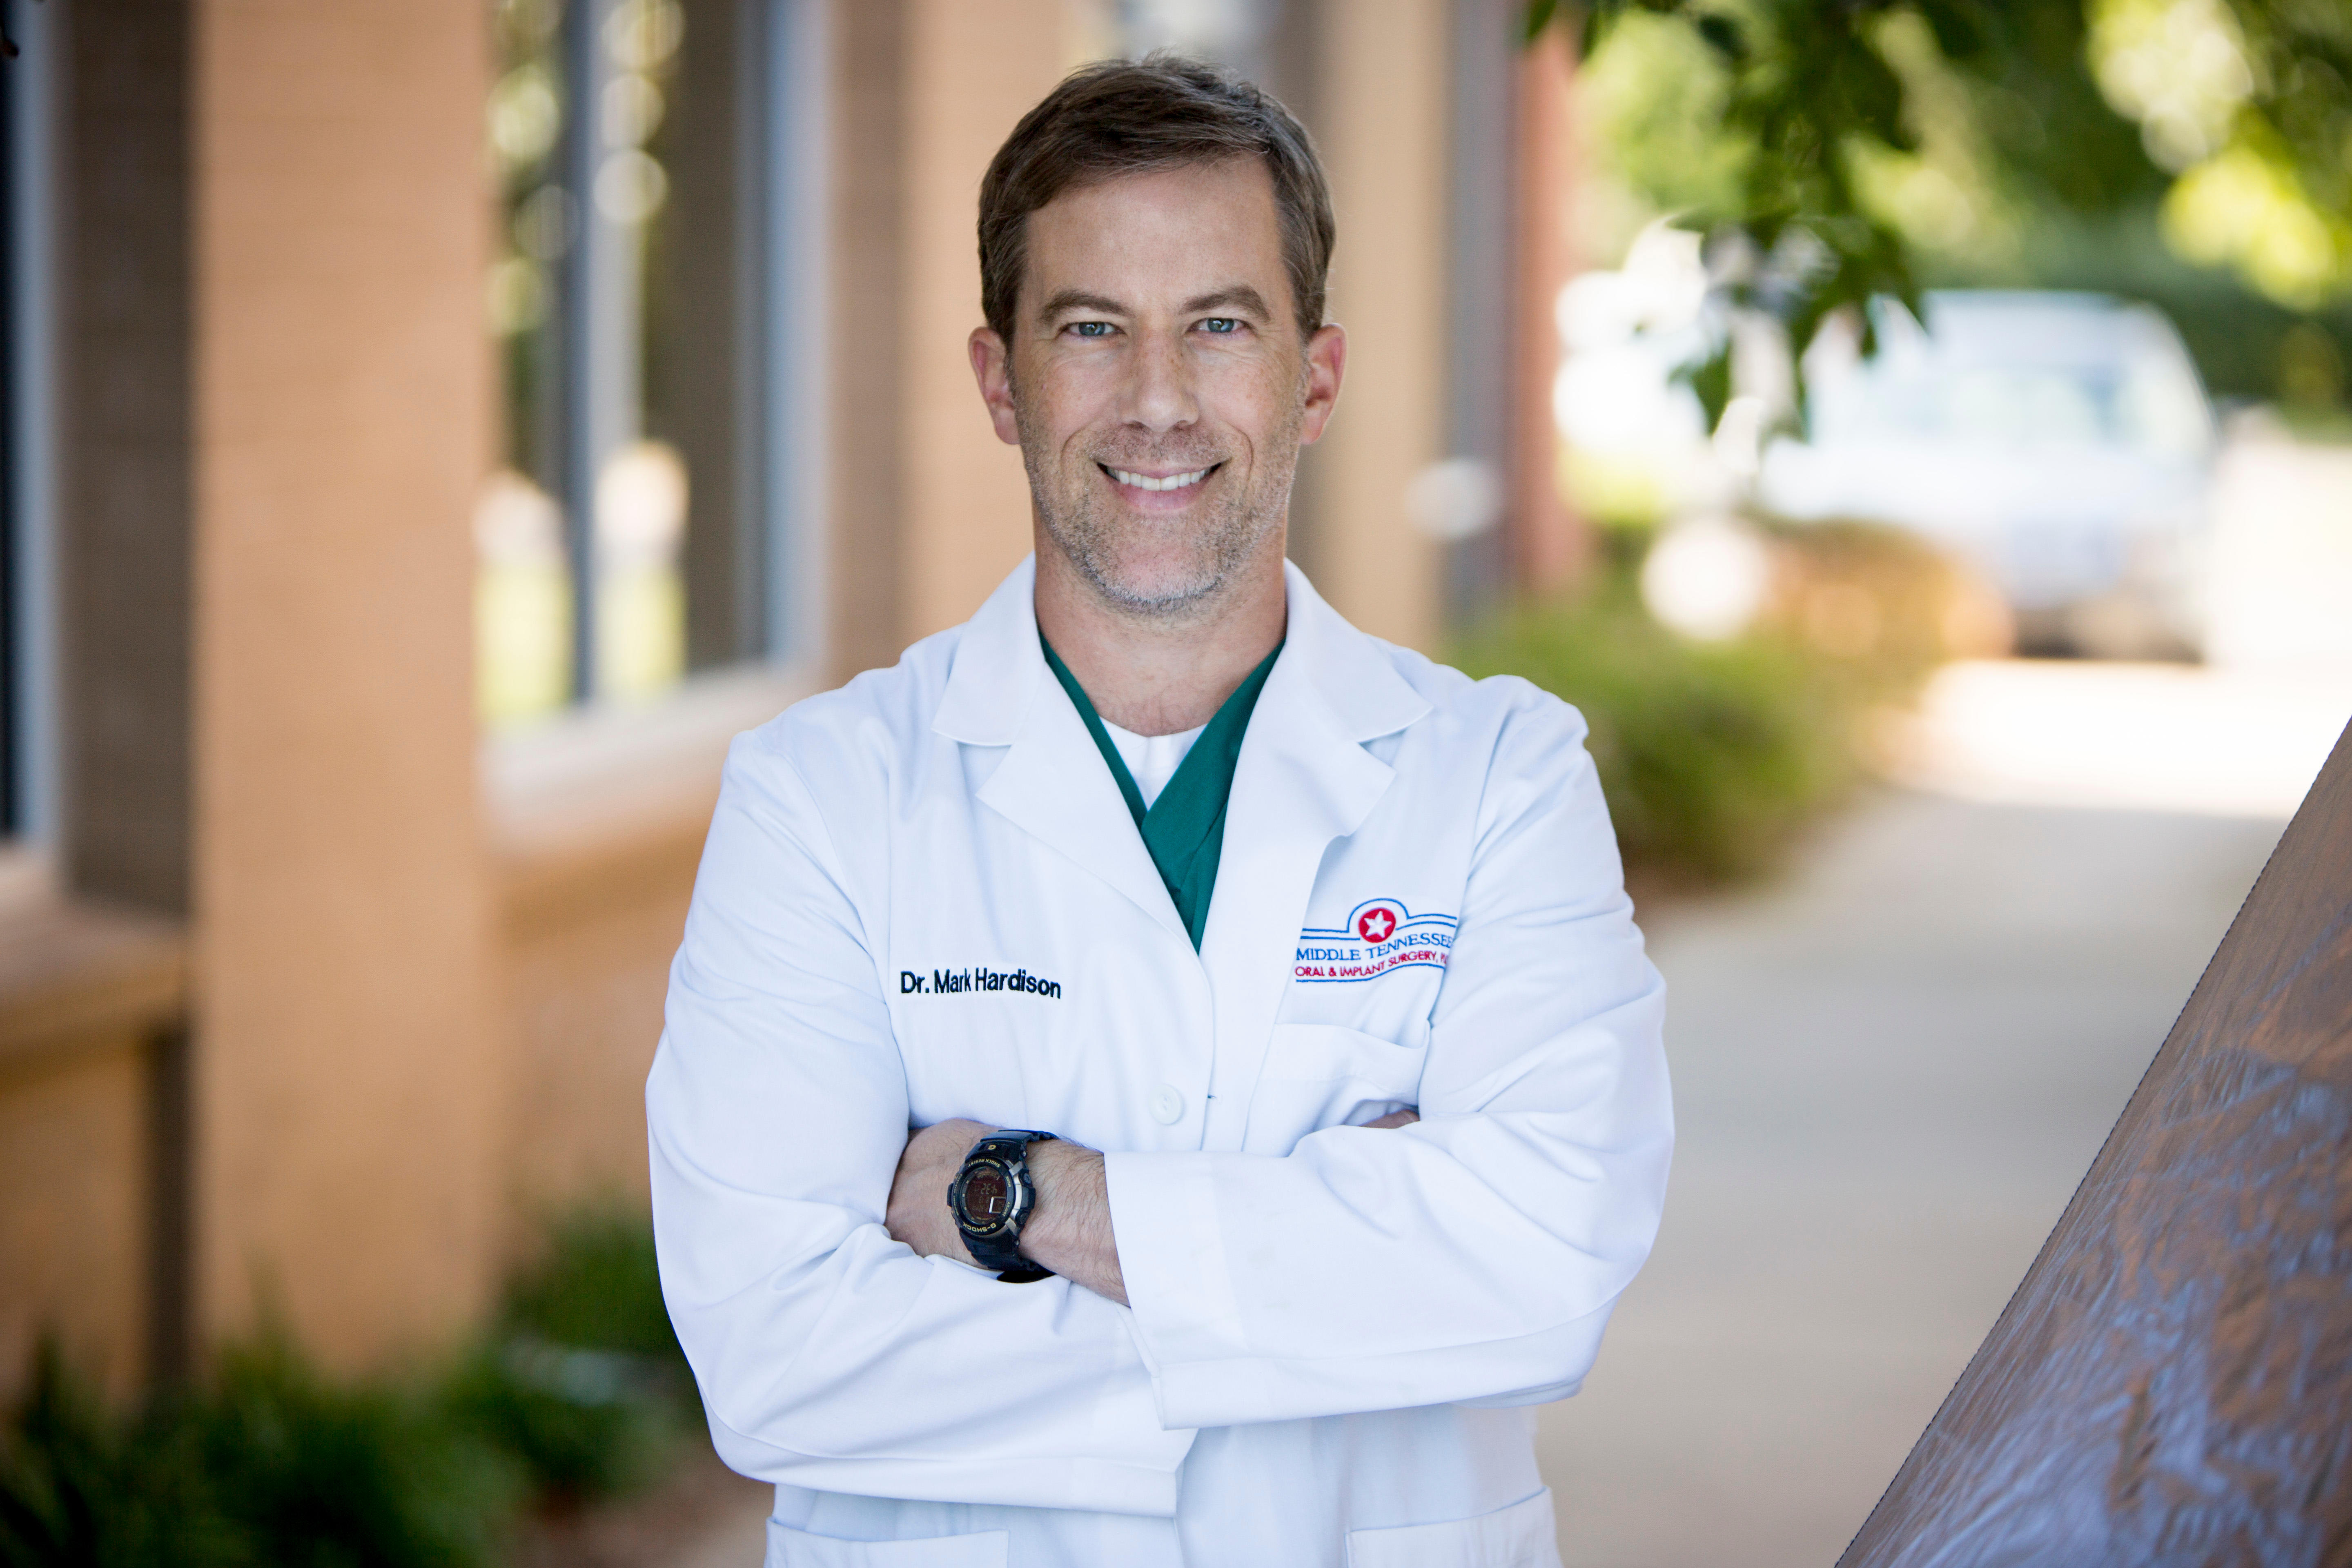 Middle Tennessee Oral & Implant Surgery PLLC image 1